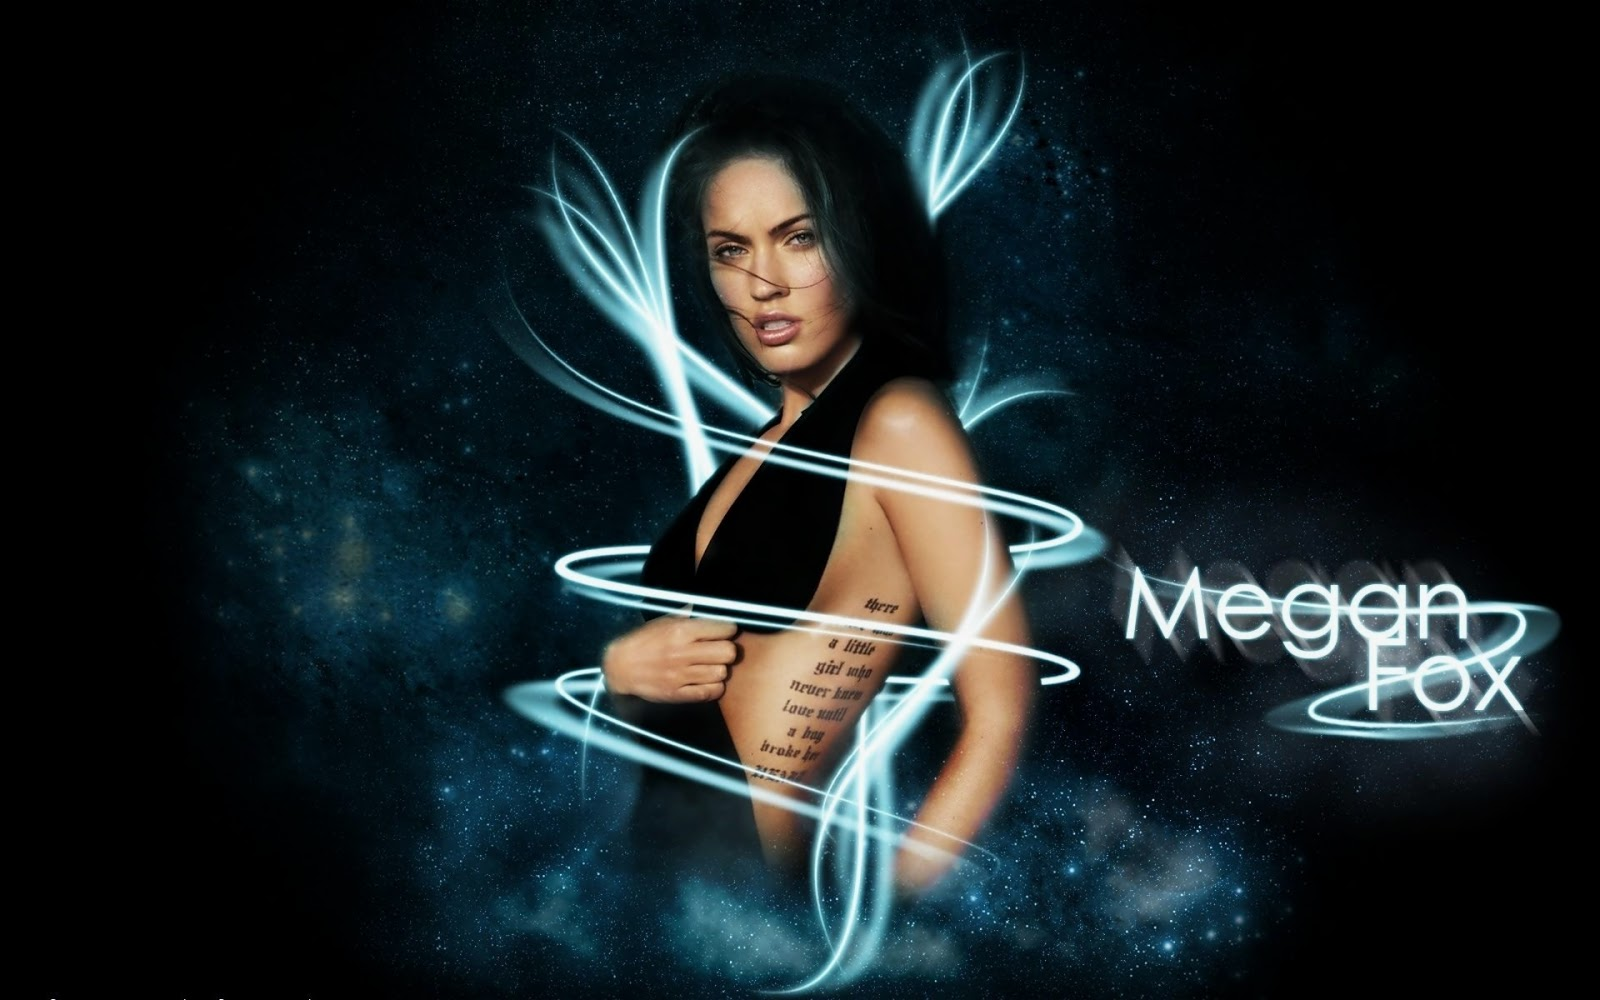 megan fox in transformers wallpapers - Megan Fox Transformers HD Wallpapers New Wallpapers